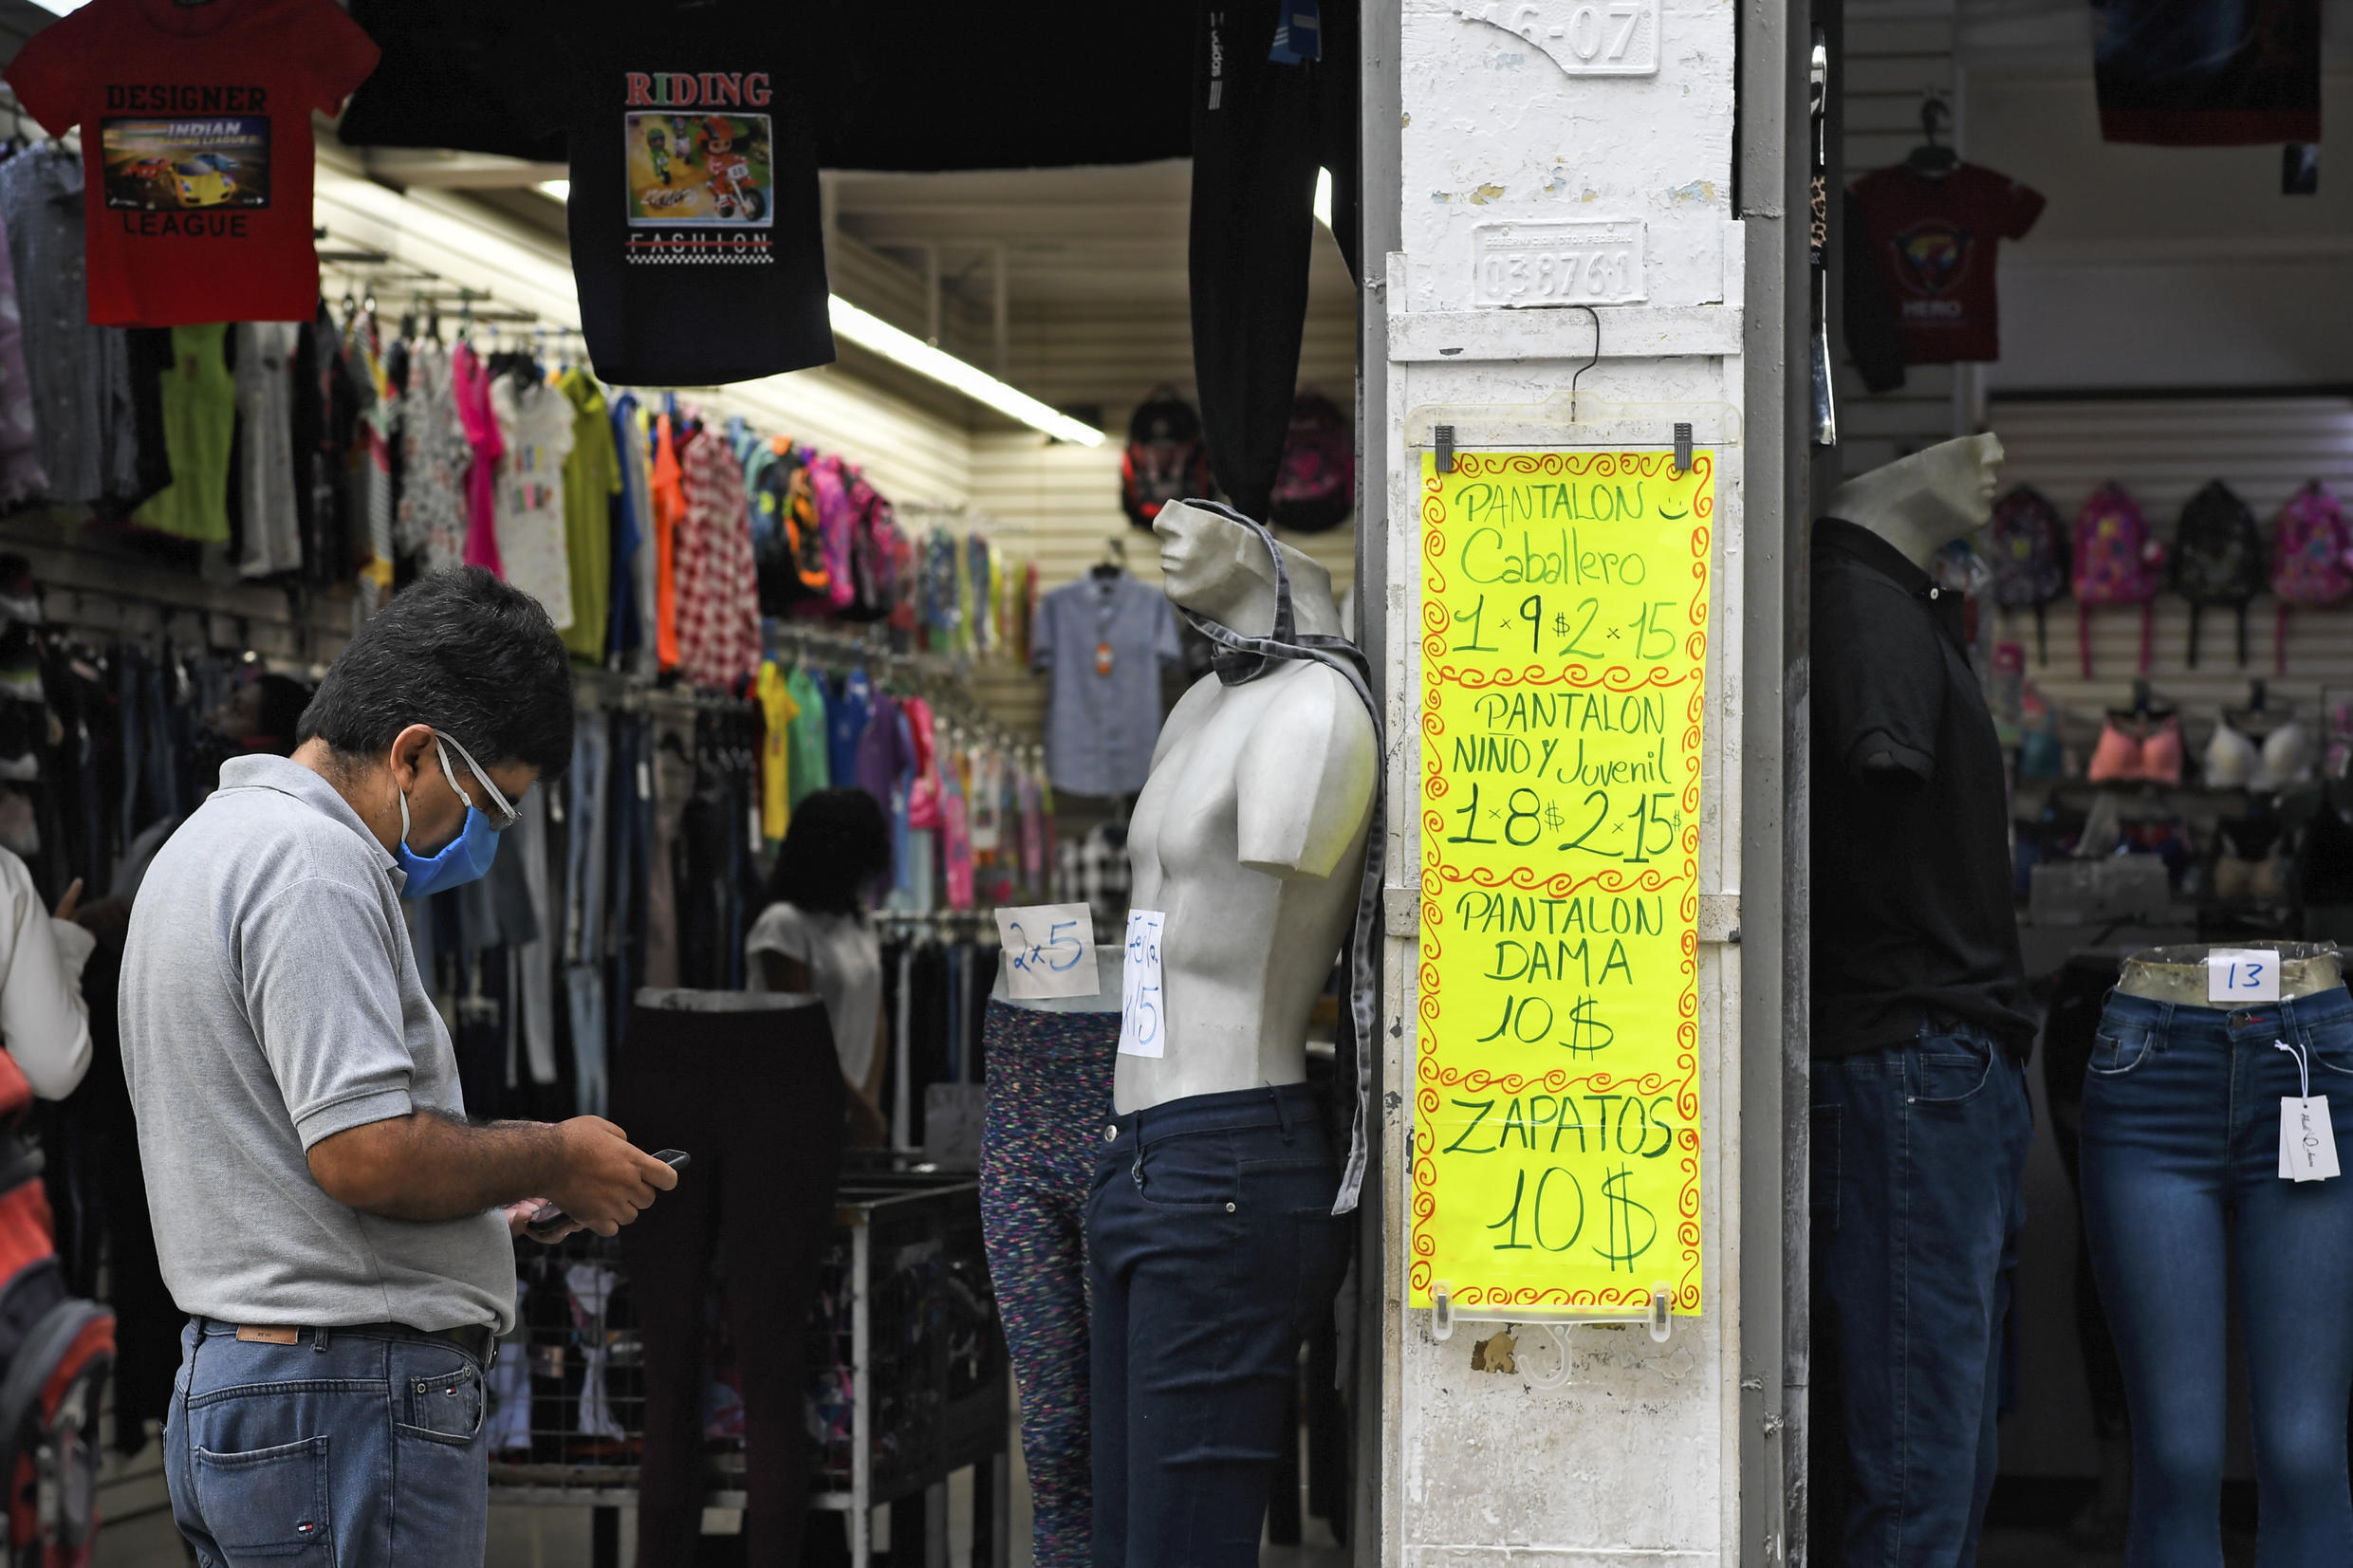 A man uses a mobile phone in front of a sign displaying prices in US dollars in December 2020 outside a clothing store in Venezuela's capital Caracas, which has been ravaged by hyperinflation and other economic problems